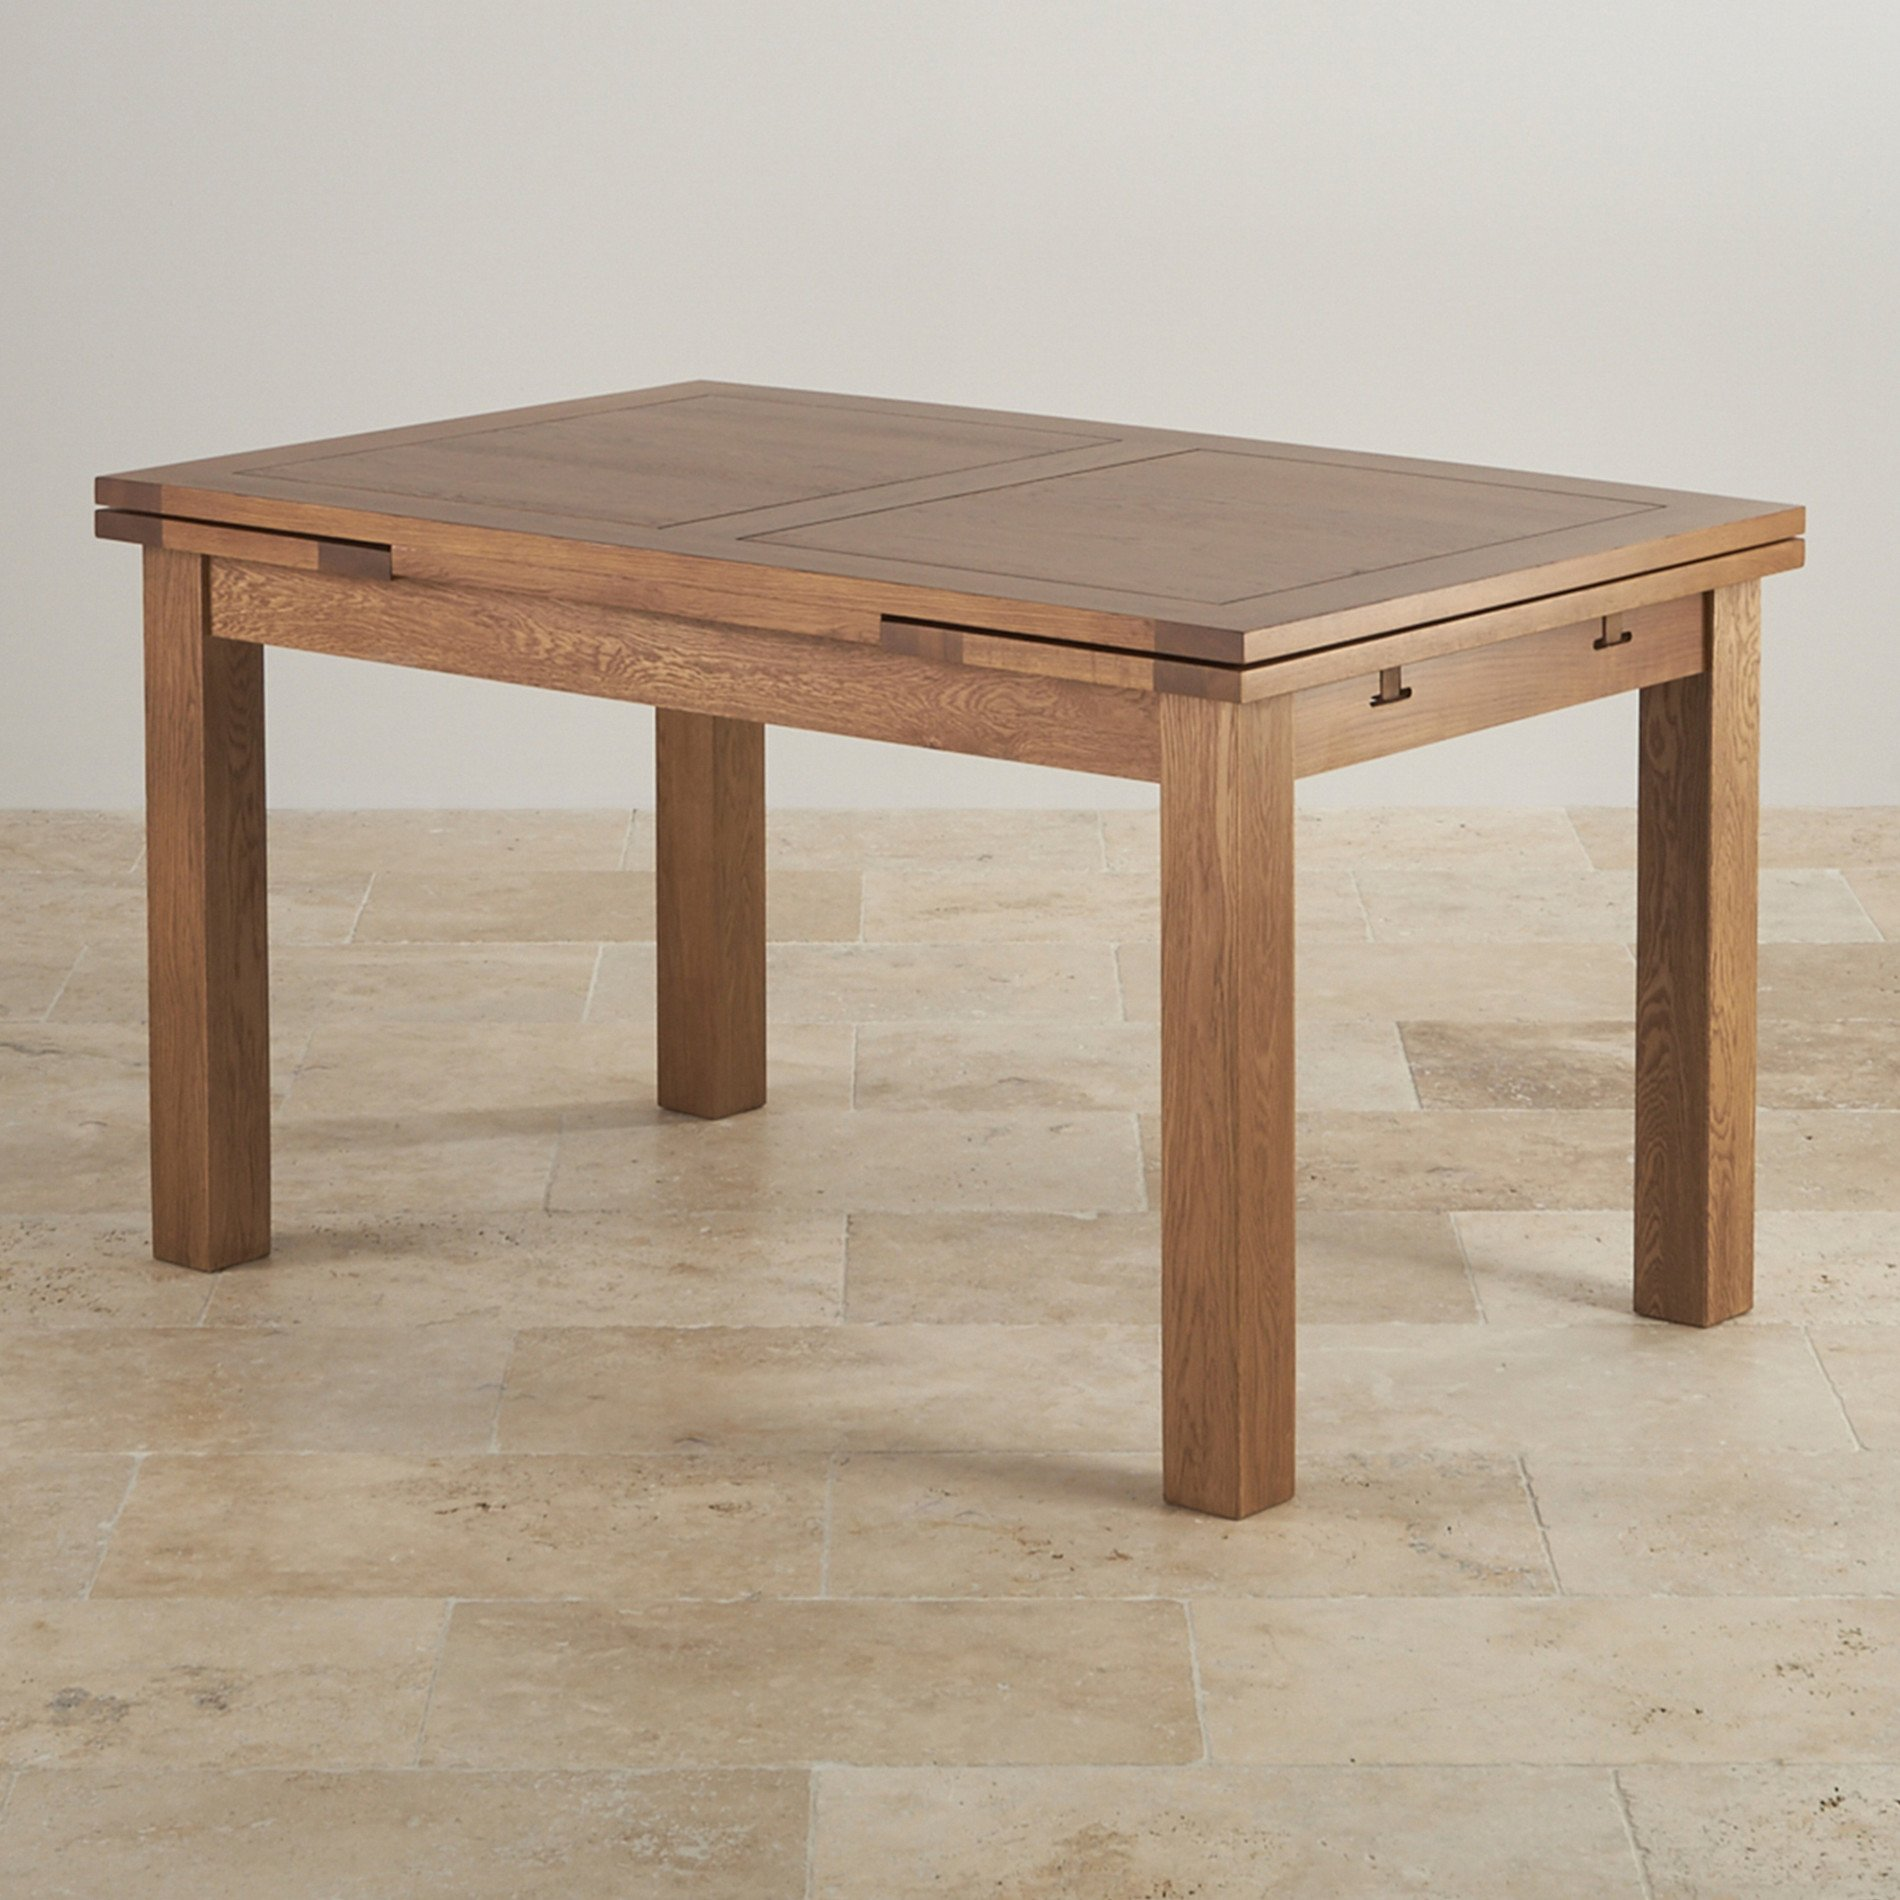 4ft 7 X 3ft Rustic Oak Extending Dining Table